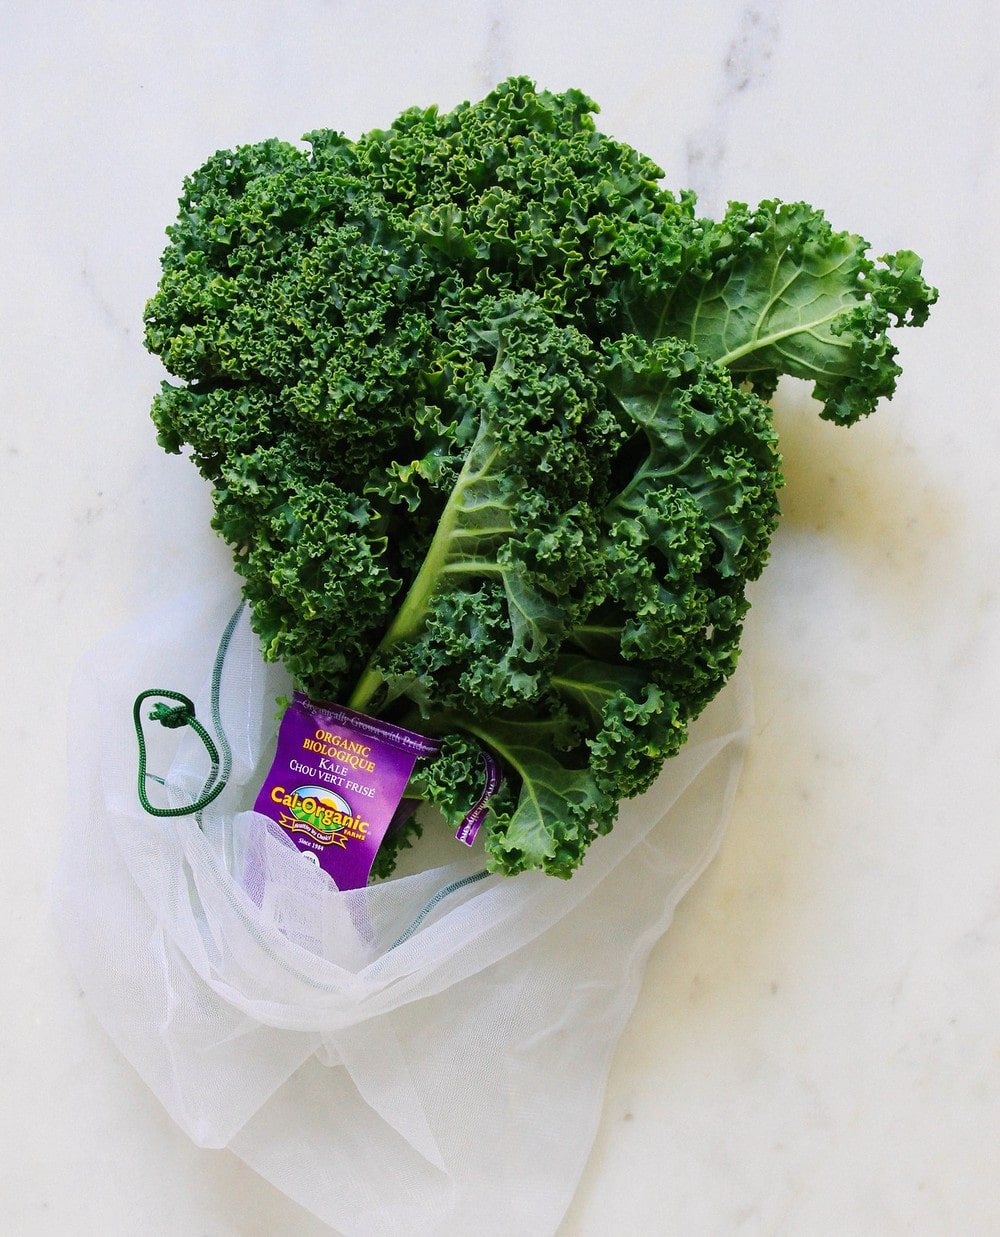 curly kale sticking out of a produce bag